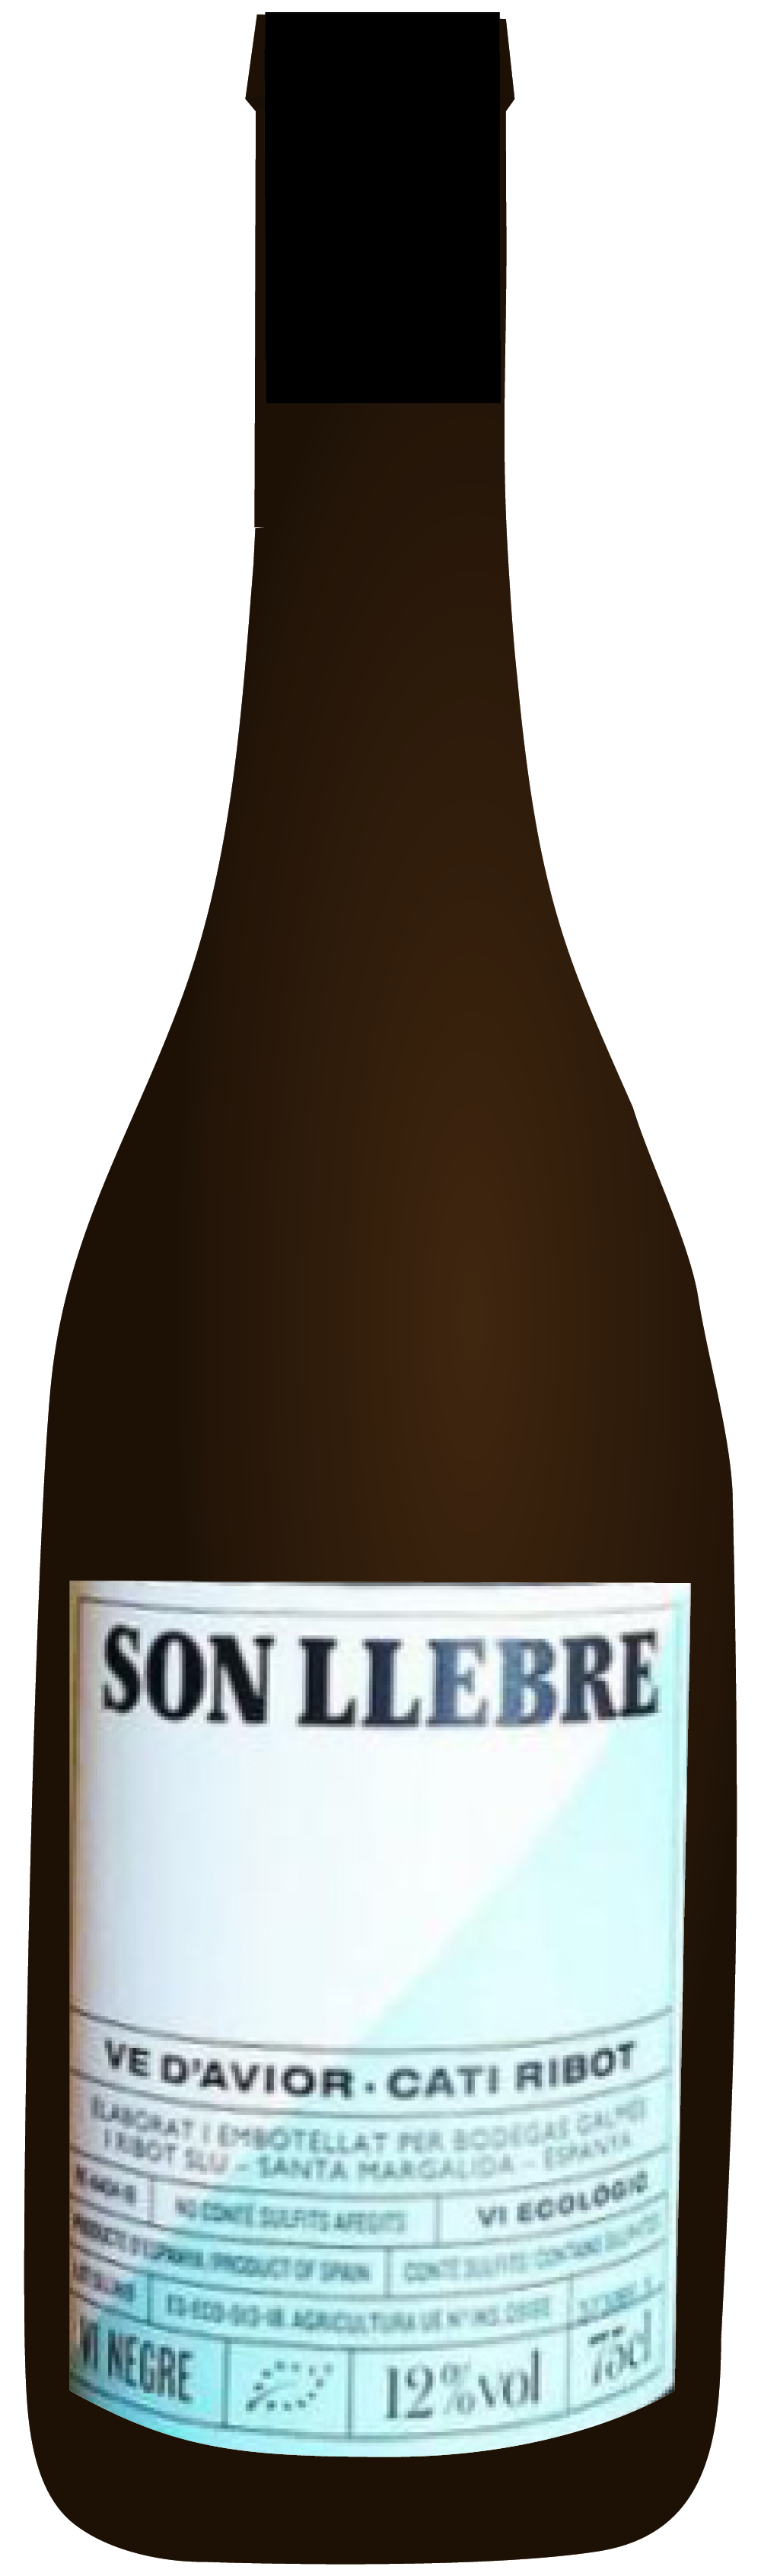 the natural wine company club december 2020 spain avior son llebre 3